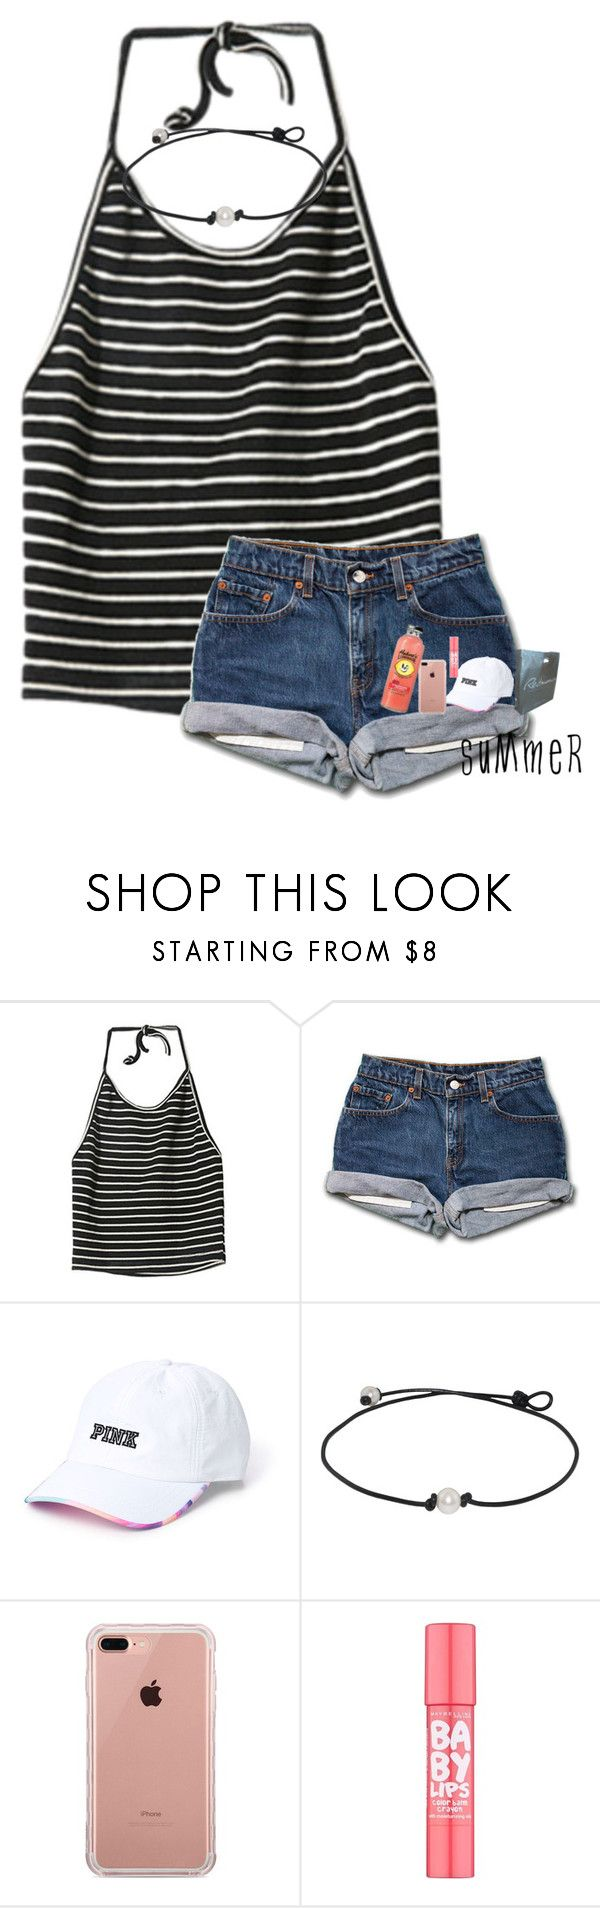 """Day: 6 shopping"" by kolbee24 ❤ liked on Polyvore featuring beauty, StyleNanda, Belkin and Maybelline"